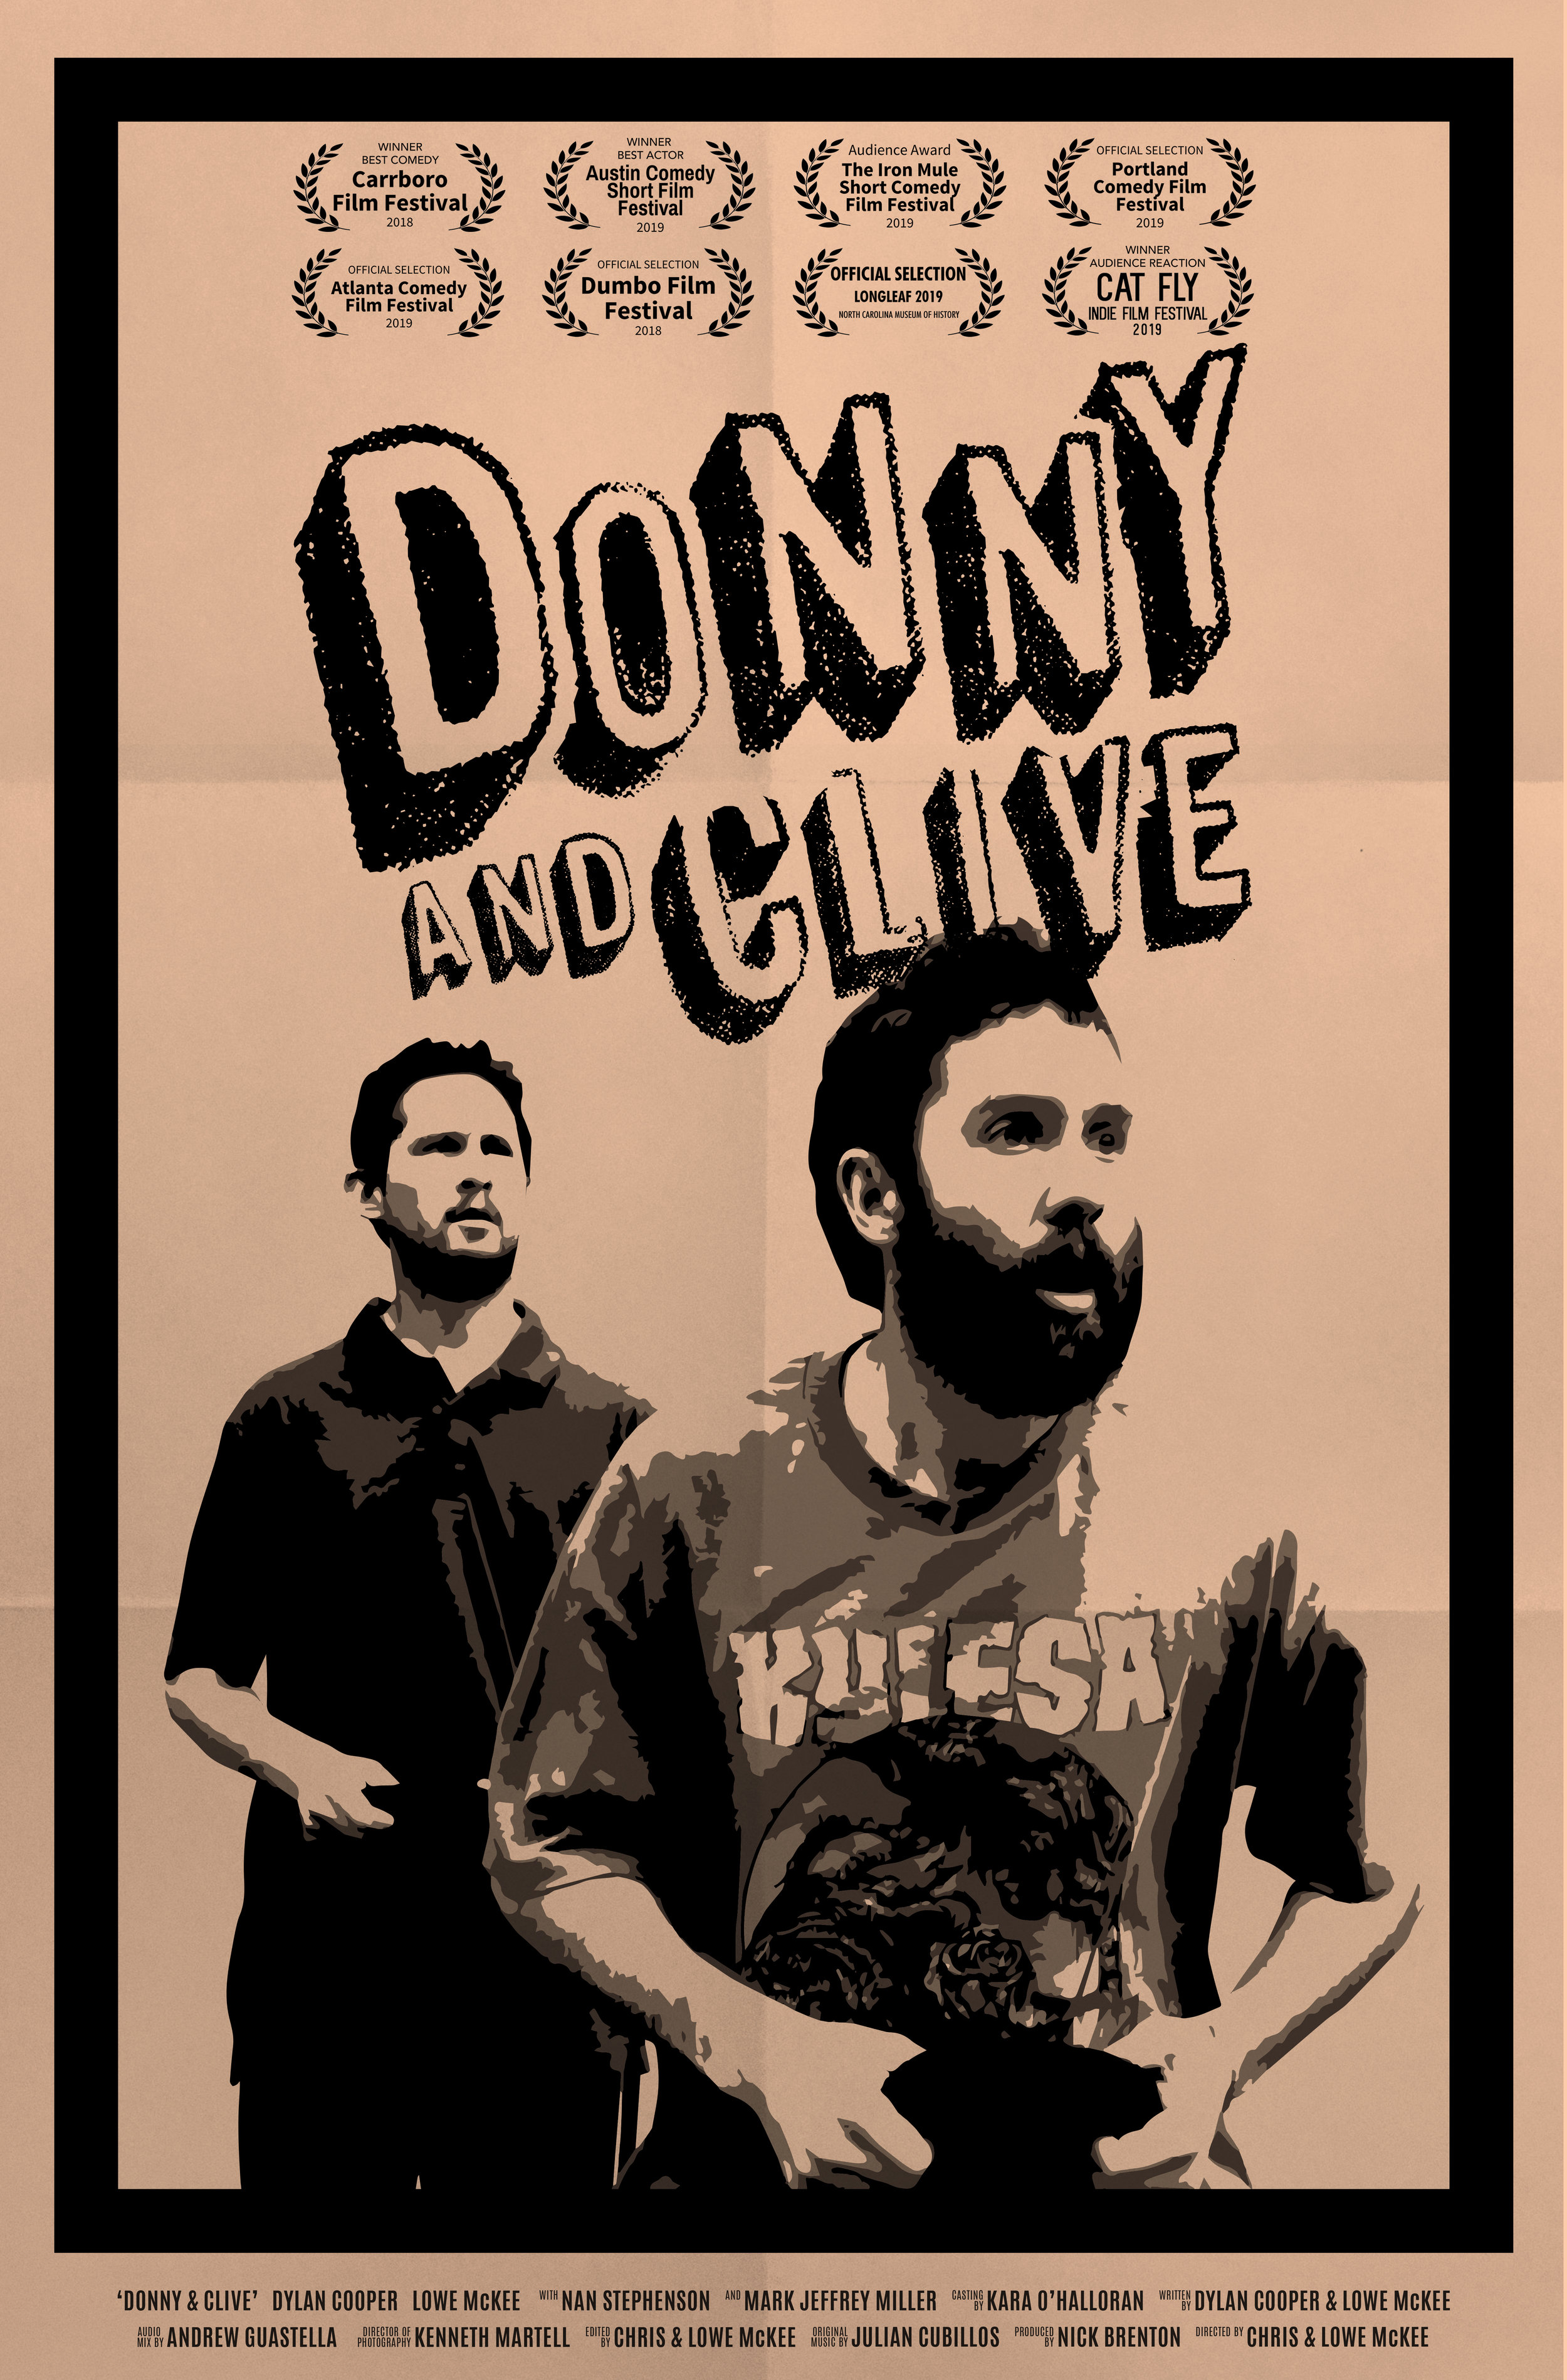 Donny and Clive poster final 27x41.jpg